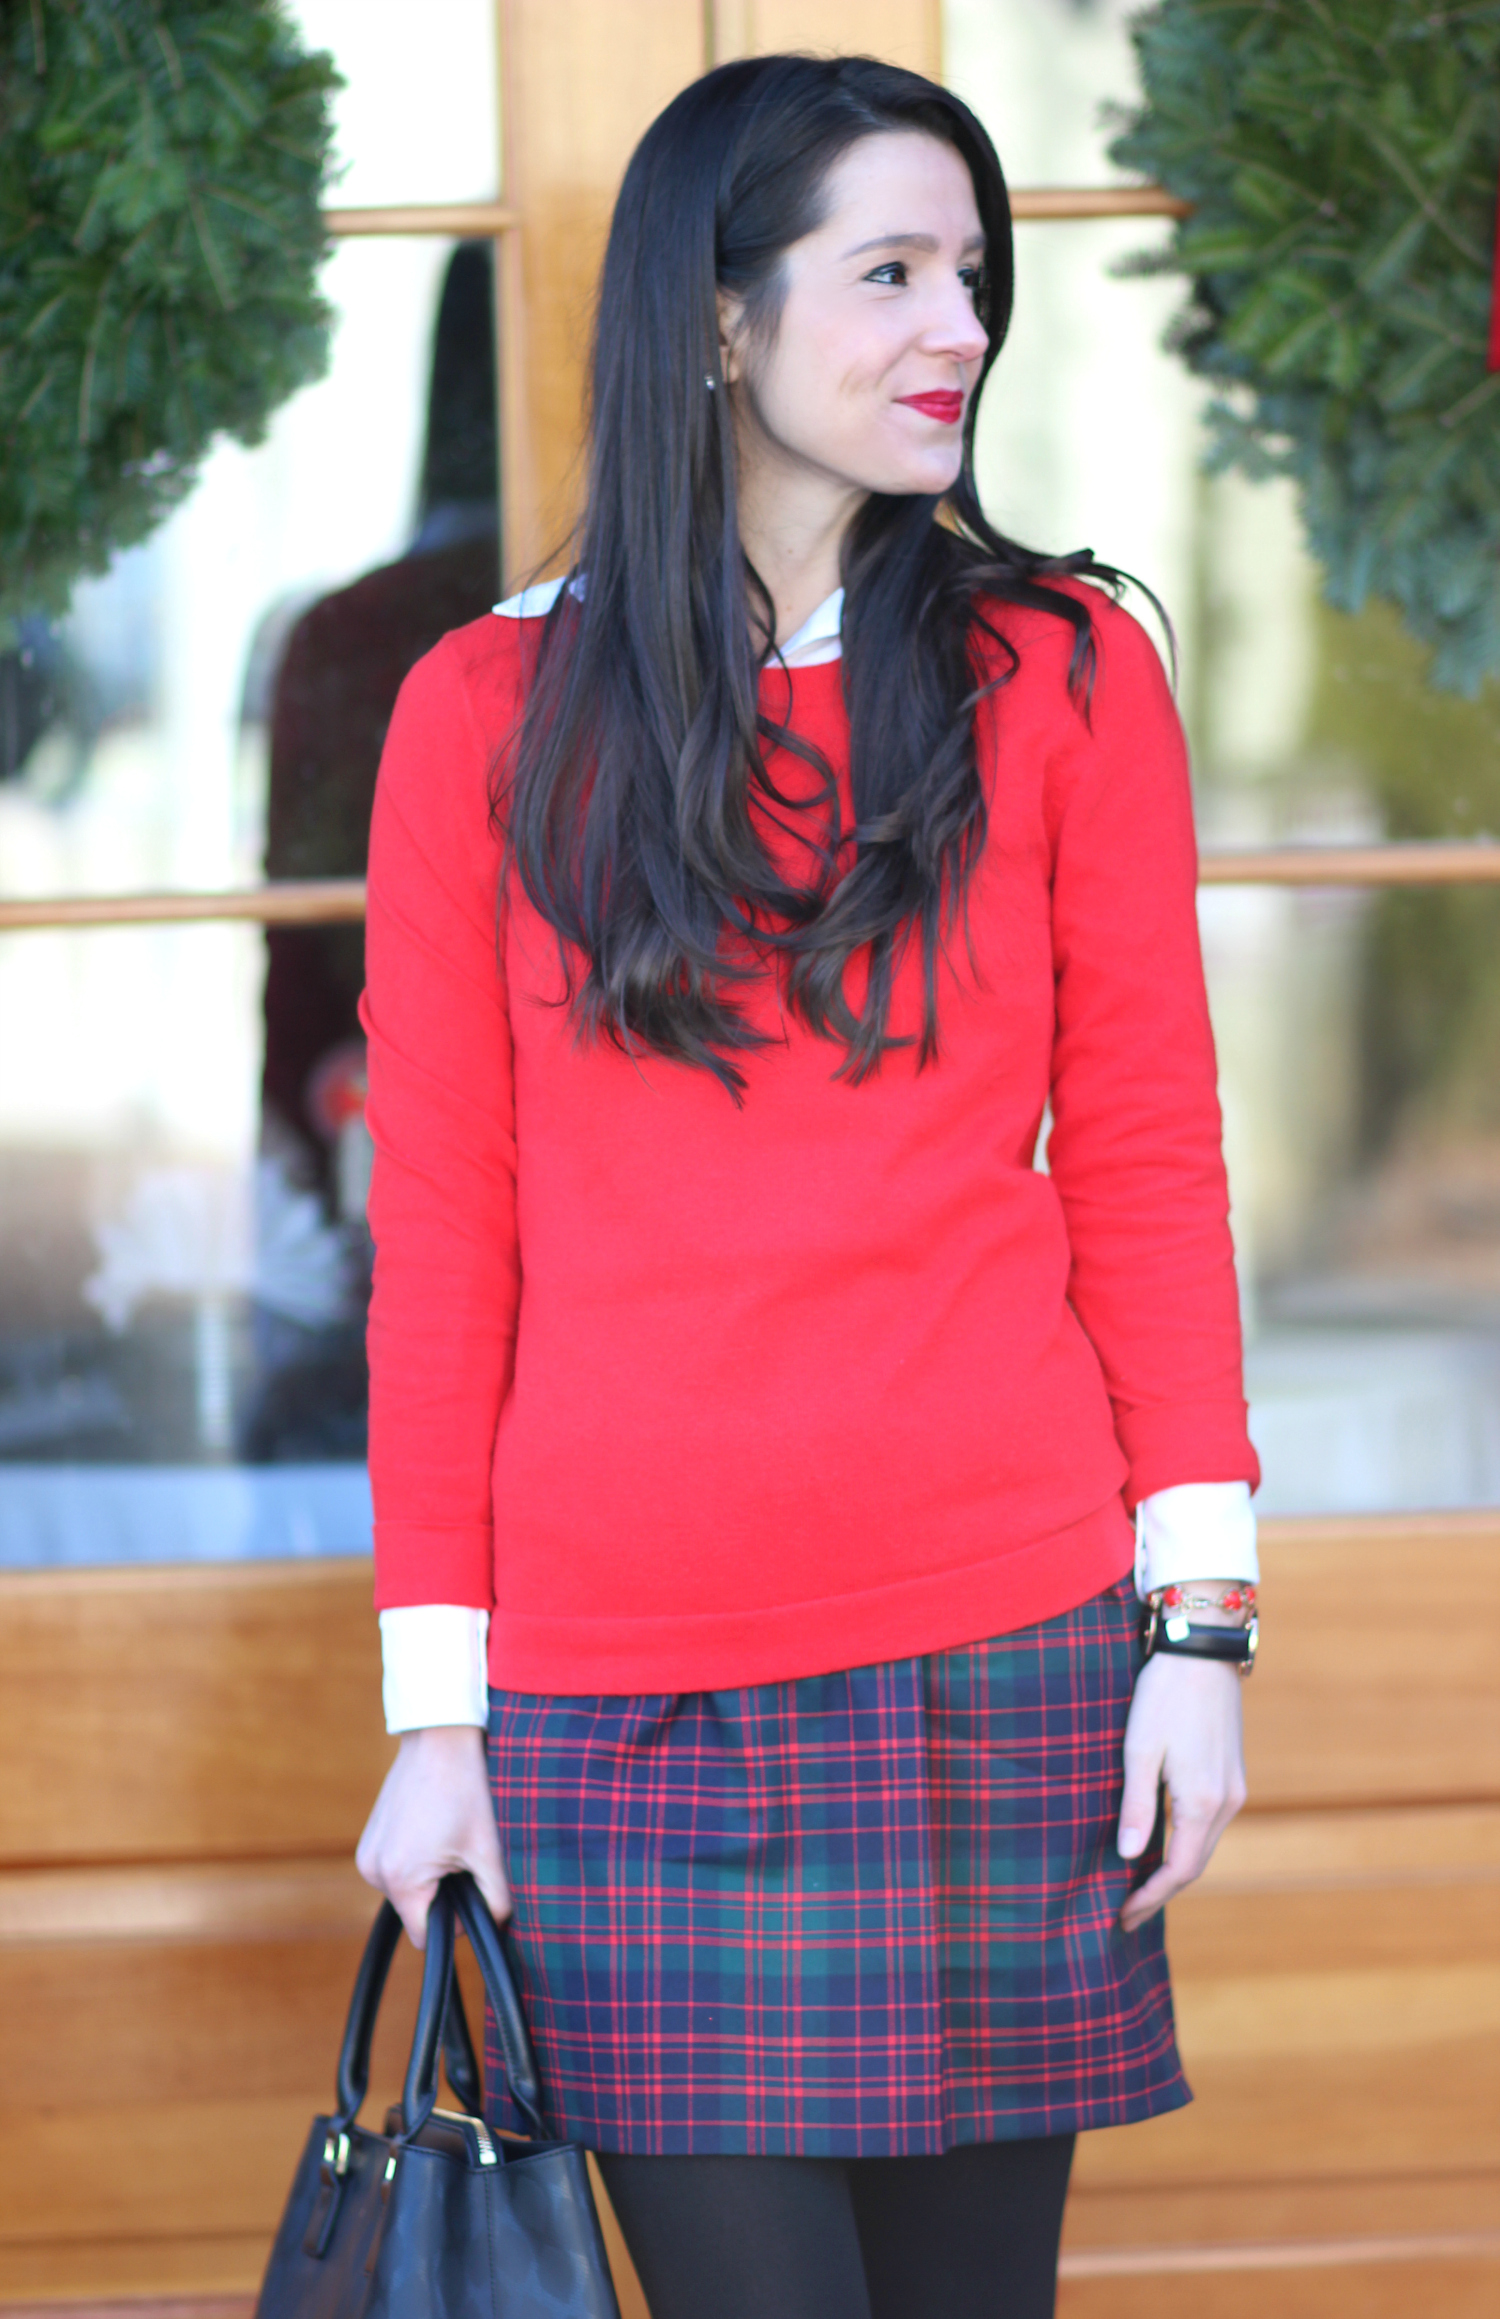 J.Crew Factory Tartan Mini Skirt and Red Teddie Sweater